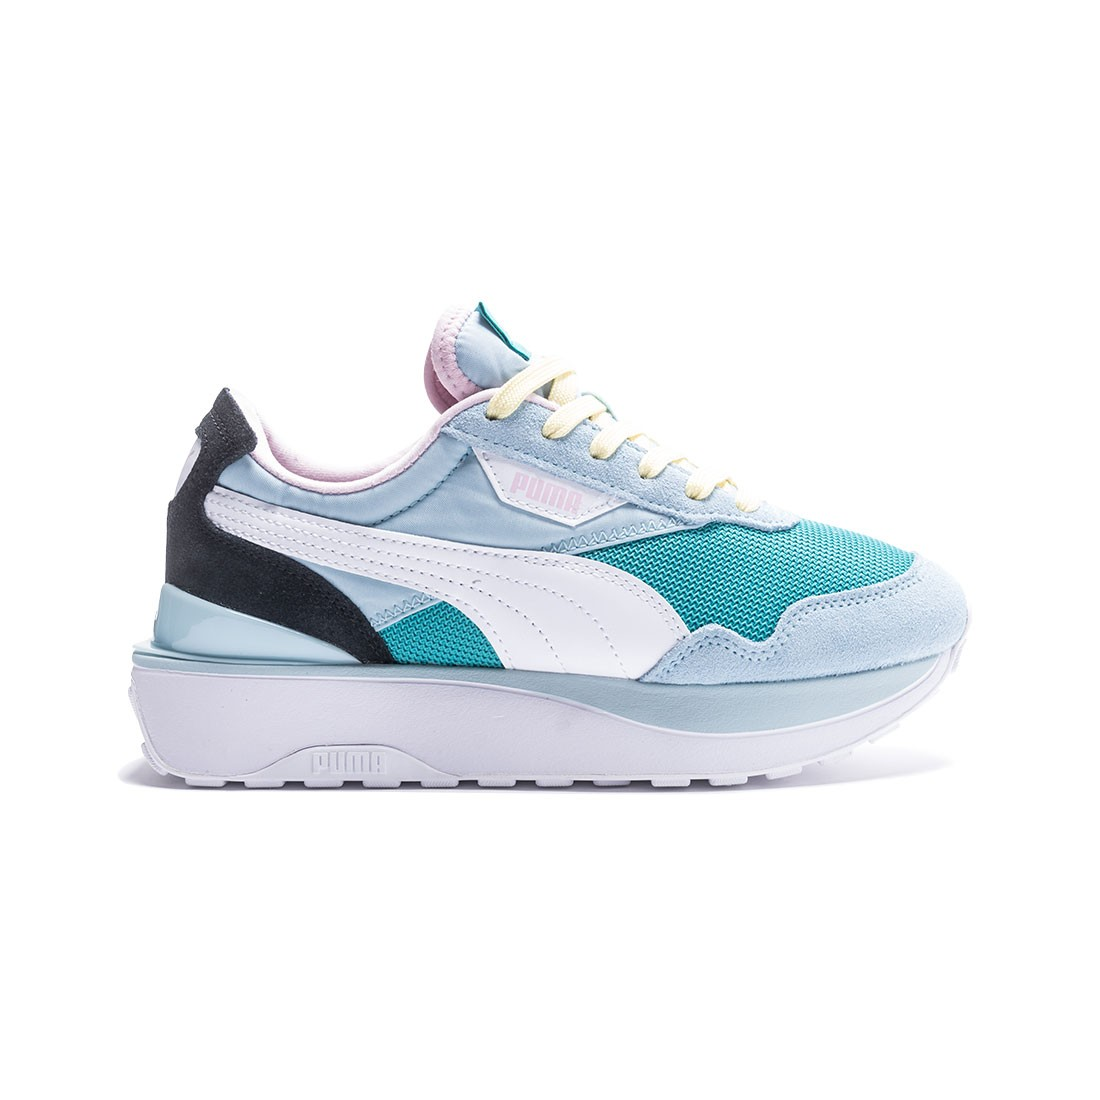 Puma Women Cruise Rider - Silk Road (blue / green)